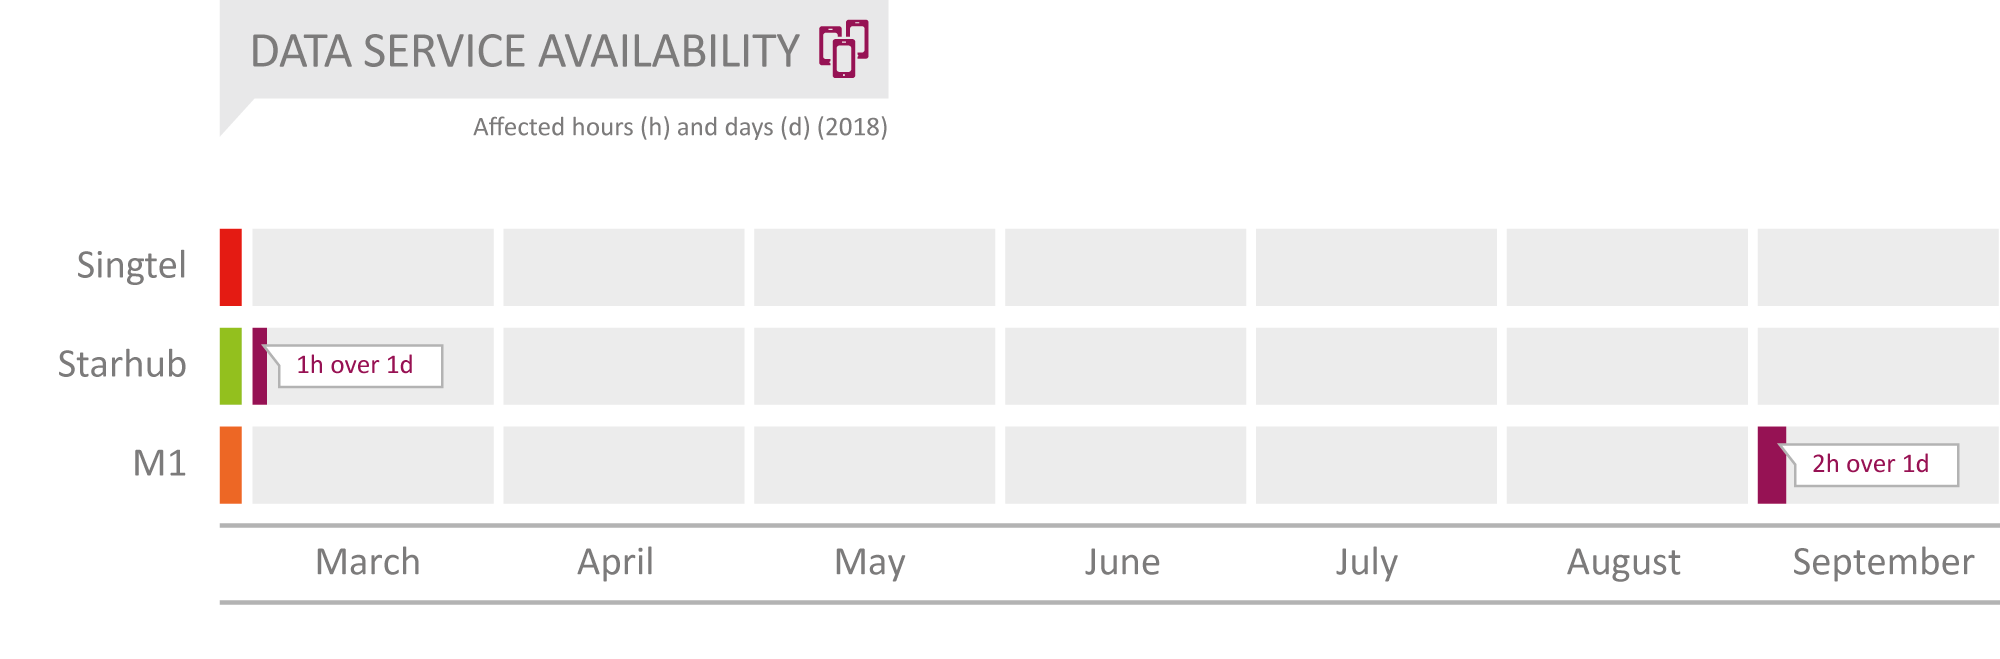 Singapore_Data_Service_Availability.png